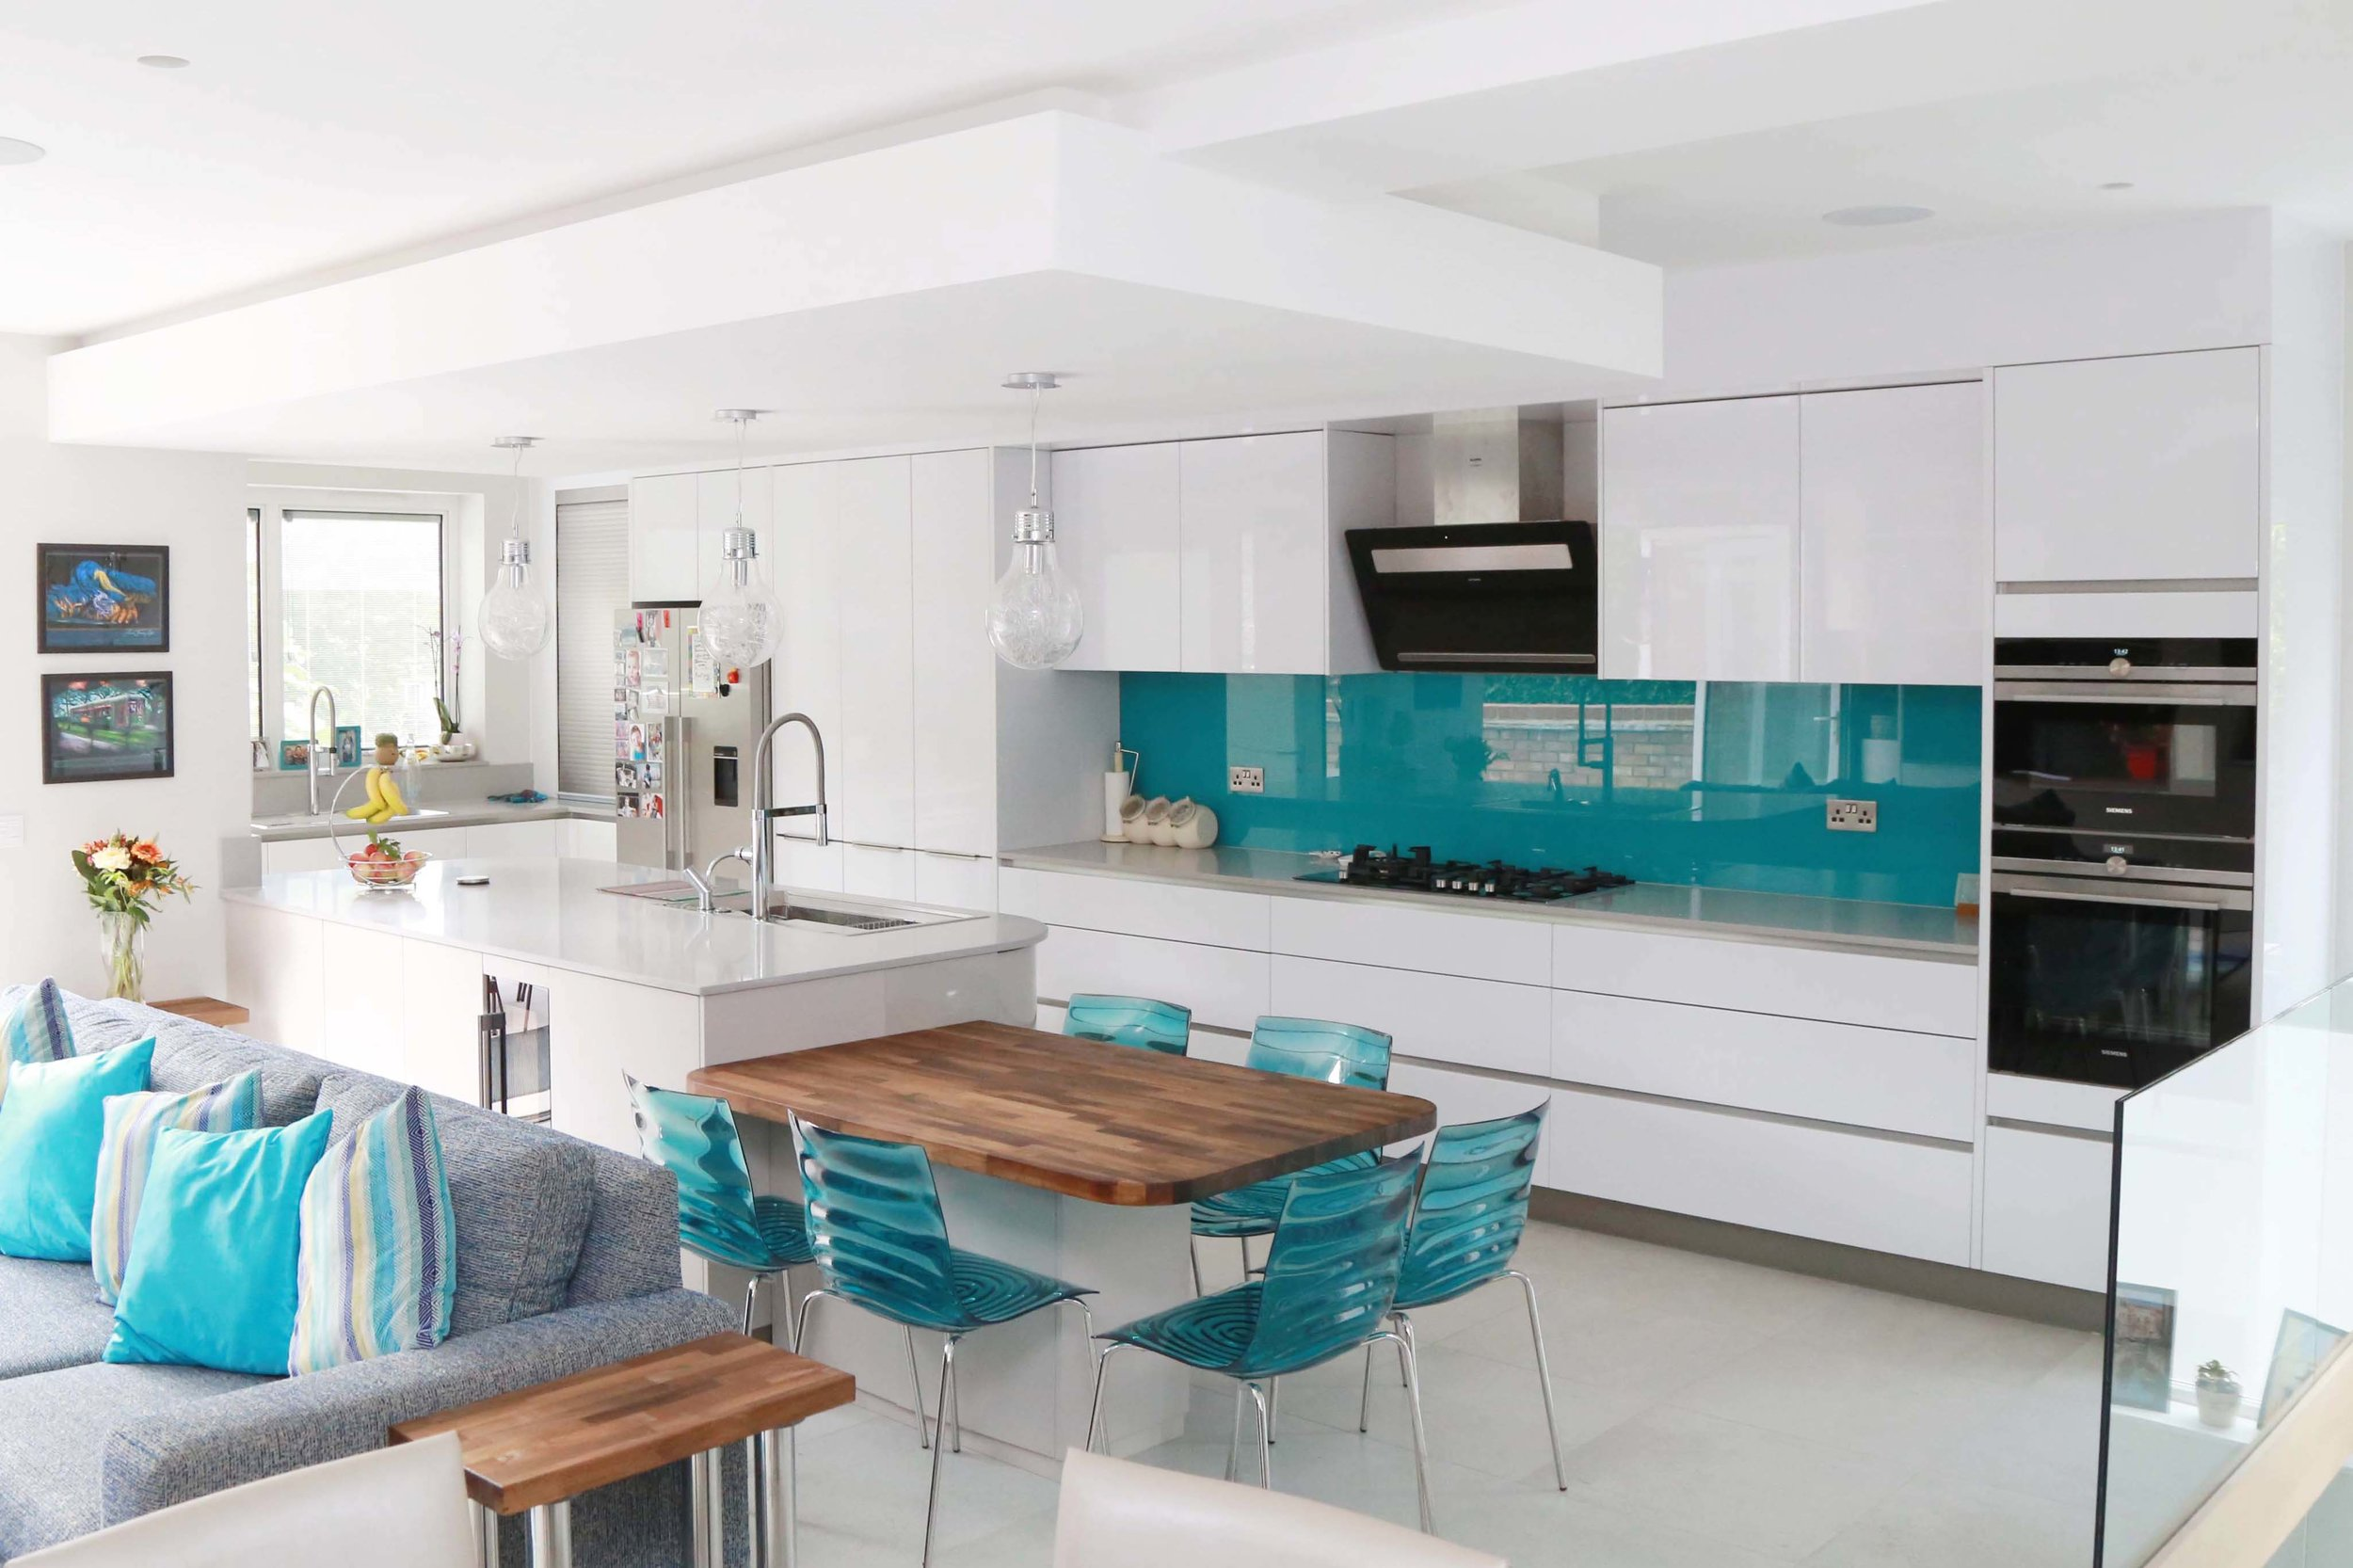 Crouch End, N8 - A large kitchen and feature wall designed using Lacquers, Walnuts and Glass.